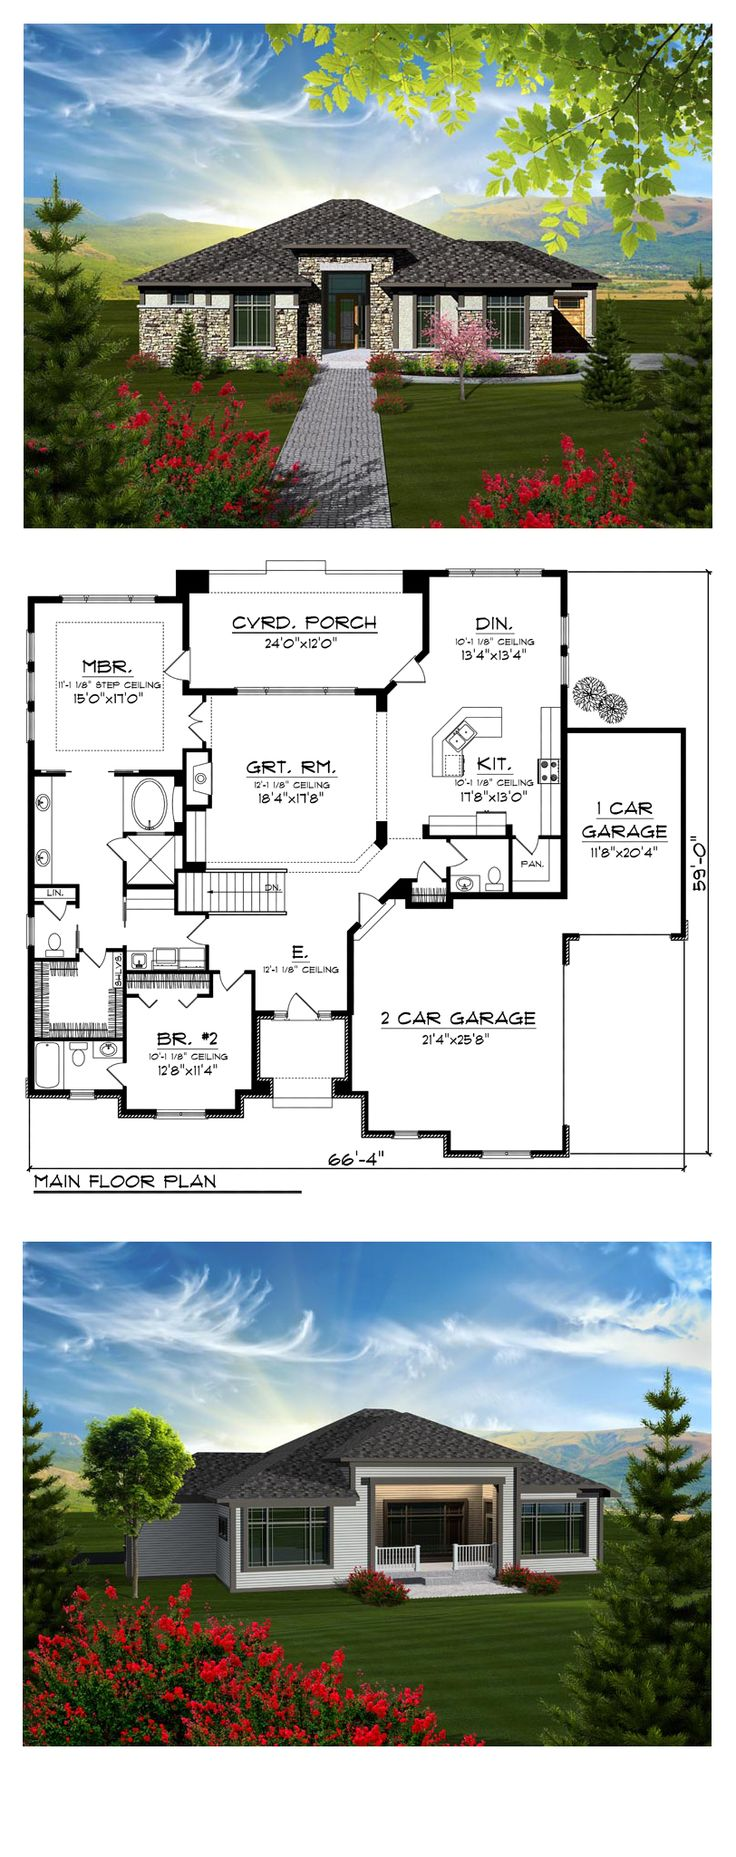 25 best ideas about prairie style houses on pinterest for Prarie house plans